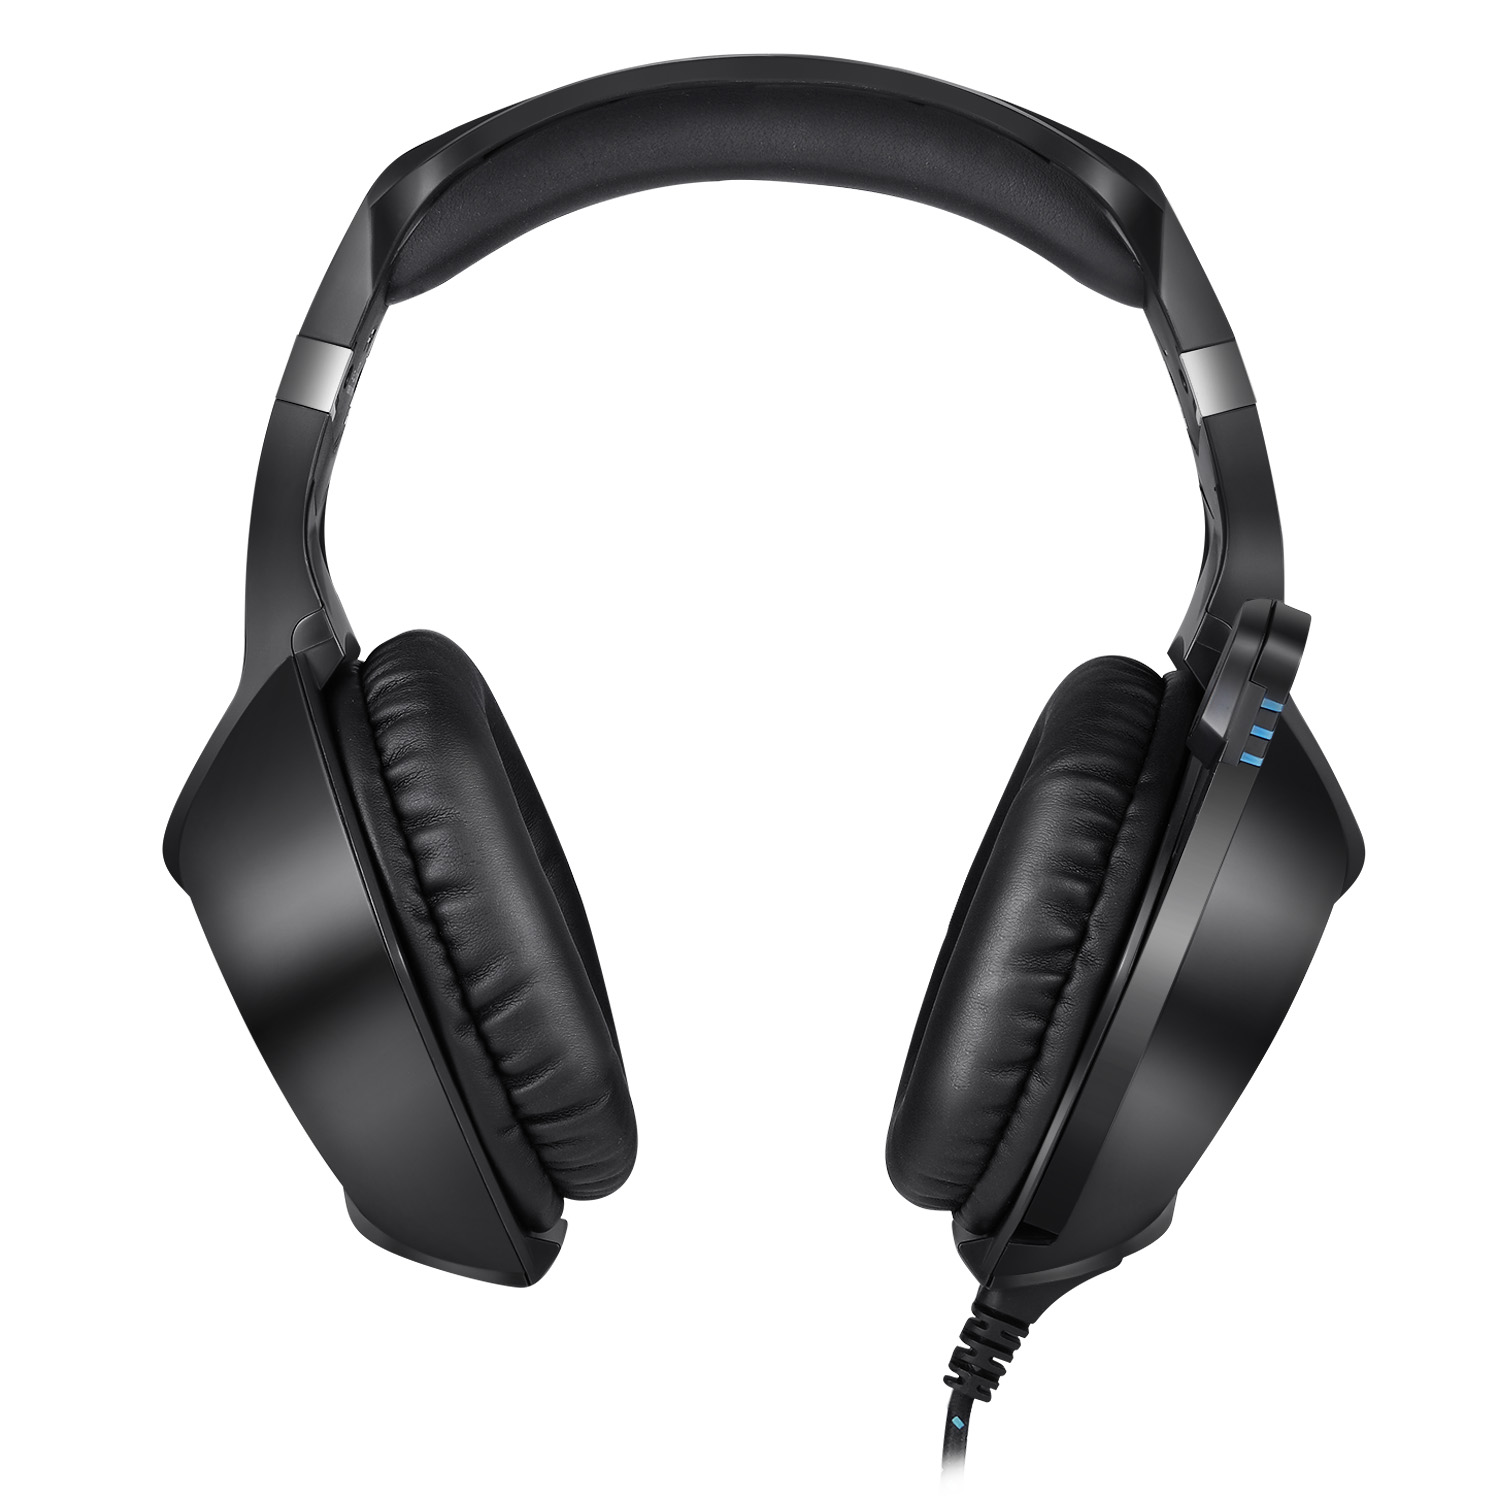 A1 Gaming Headset Top Sell Noise Canceling with Mic